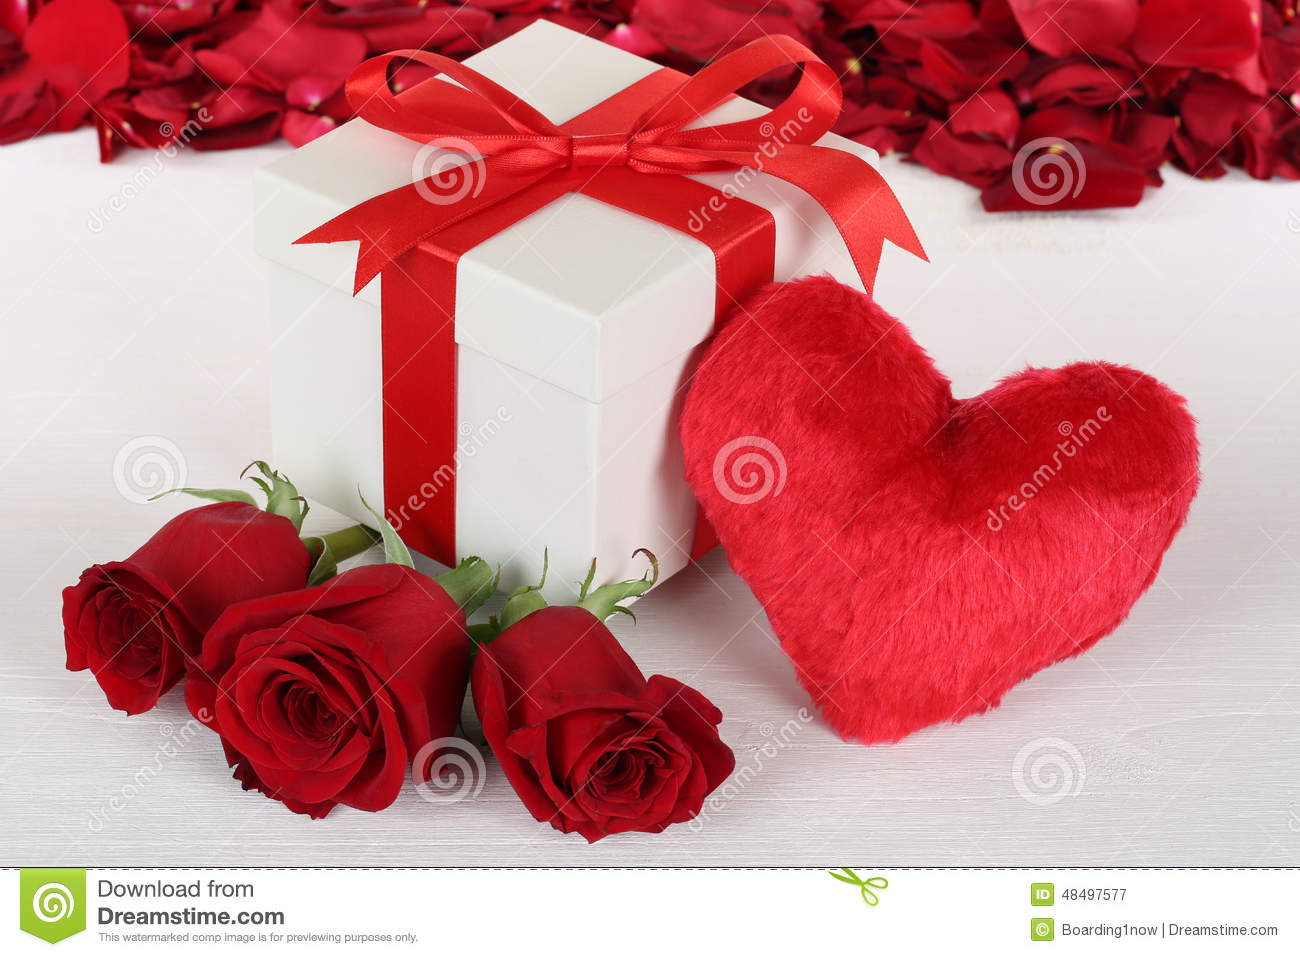 Gift Box With Heart And Roses For Birthday Valentine S Or Mothe